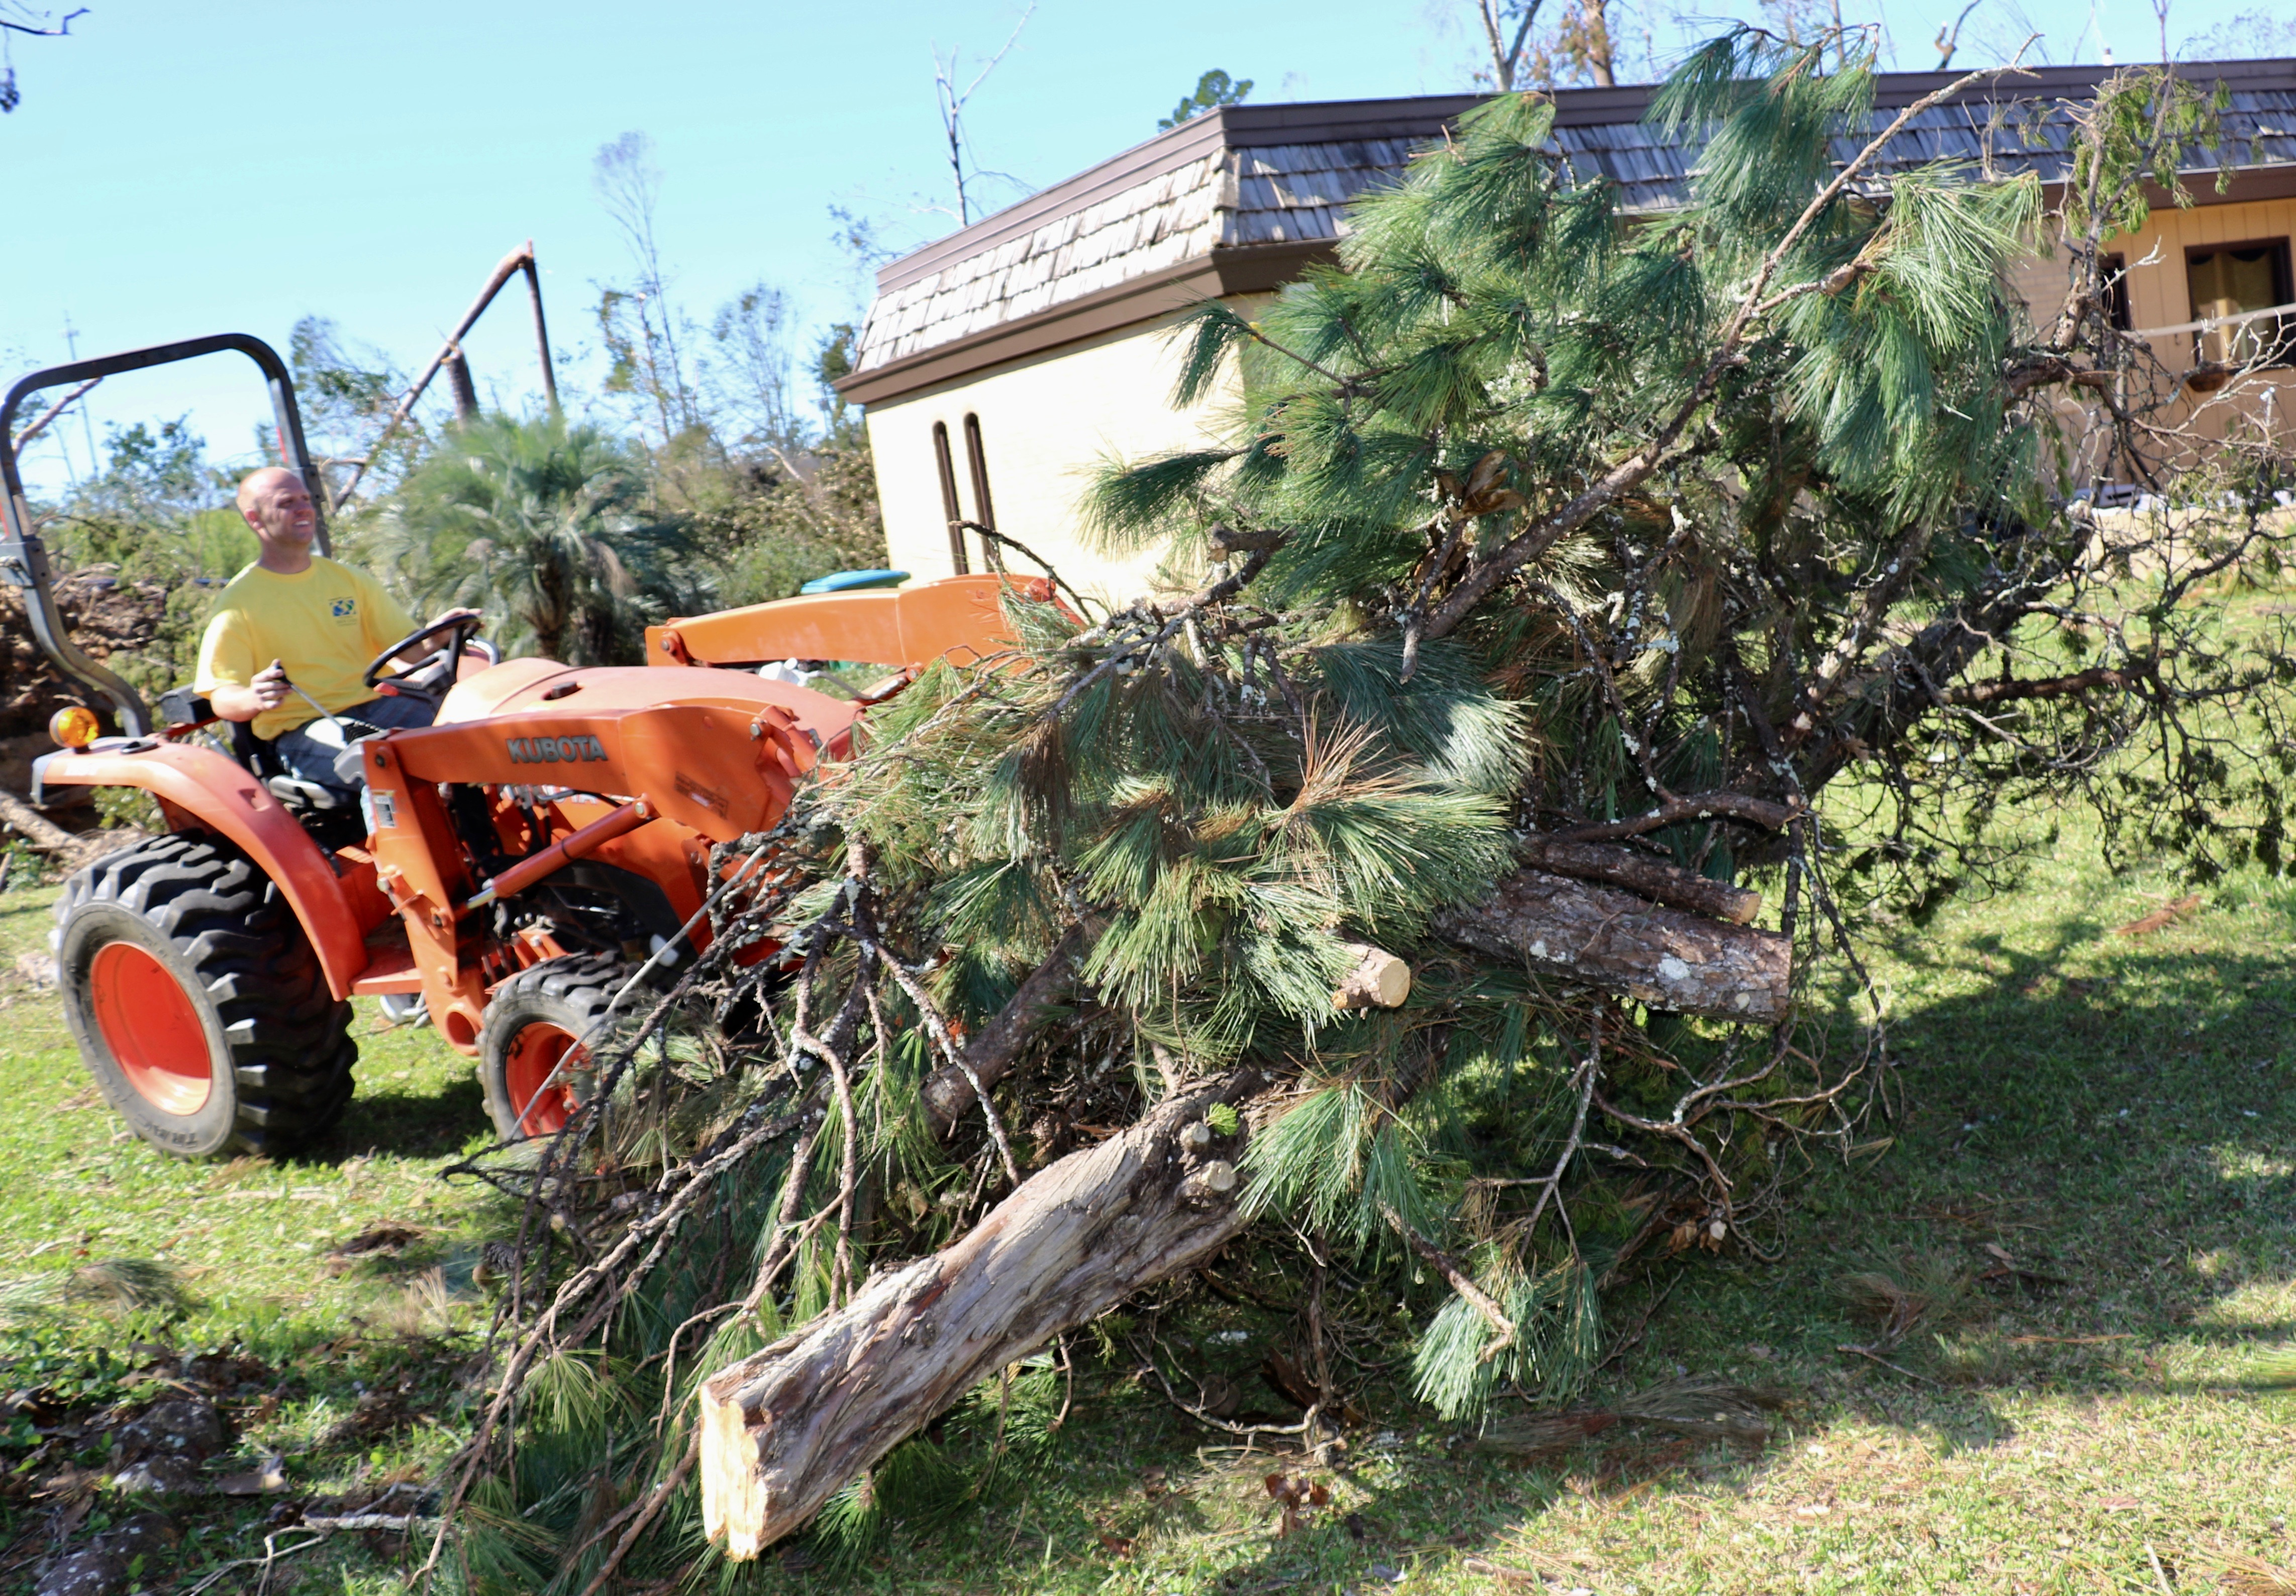 Daniel Wemberly commandeers tractor to clear out fallen trees in Marianna, Florida.